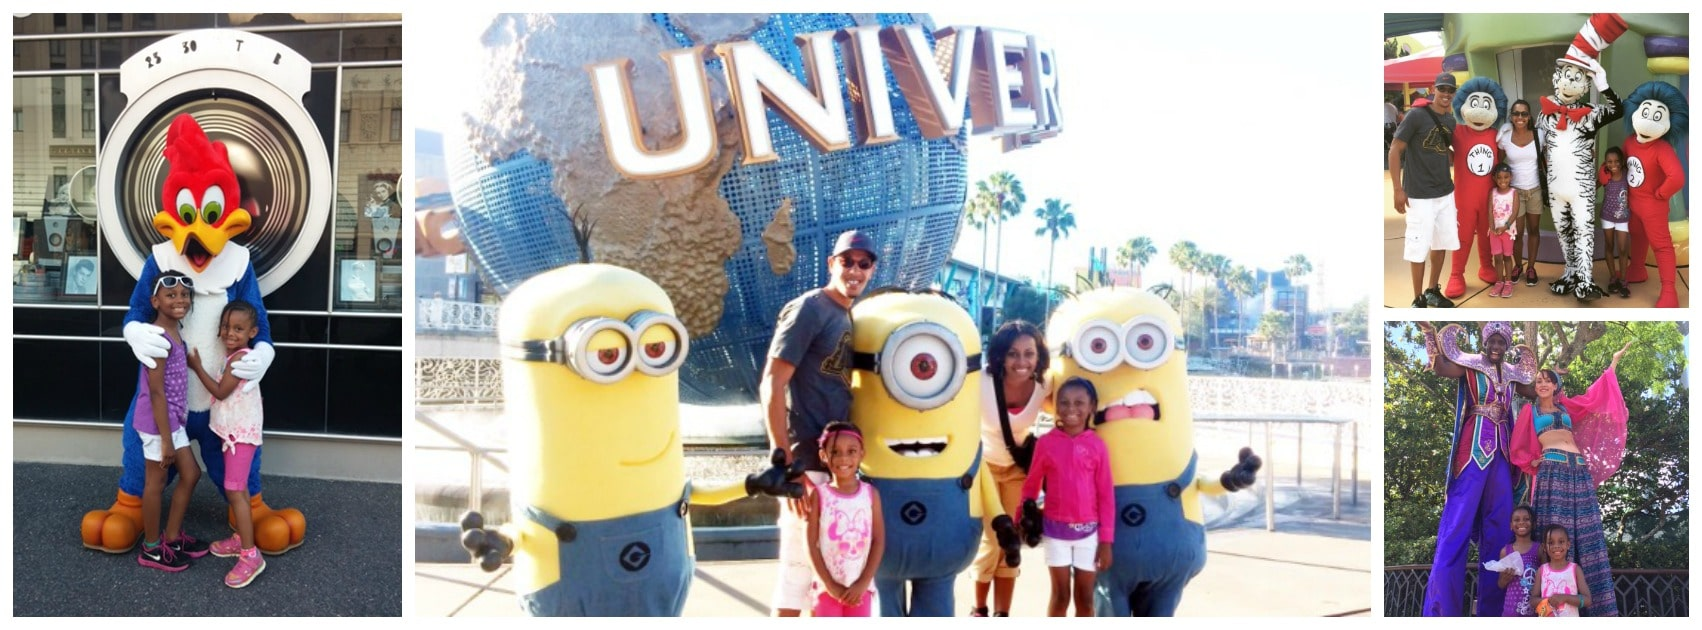 Adams Family Vacation to Universal Studios